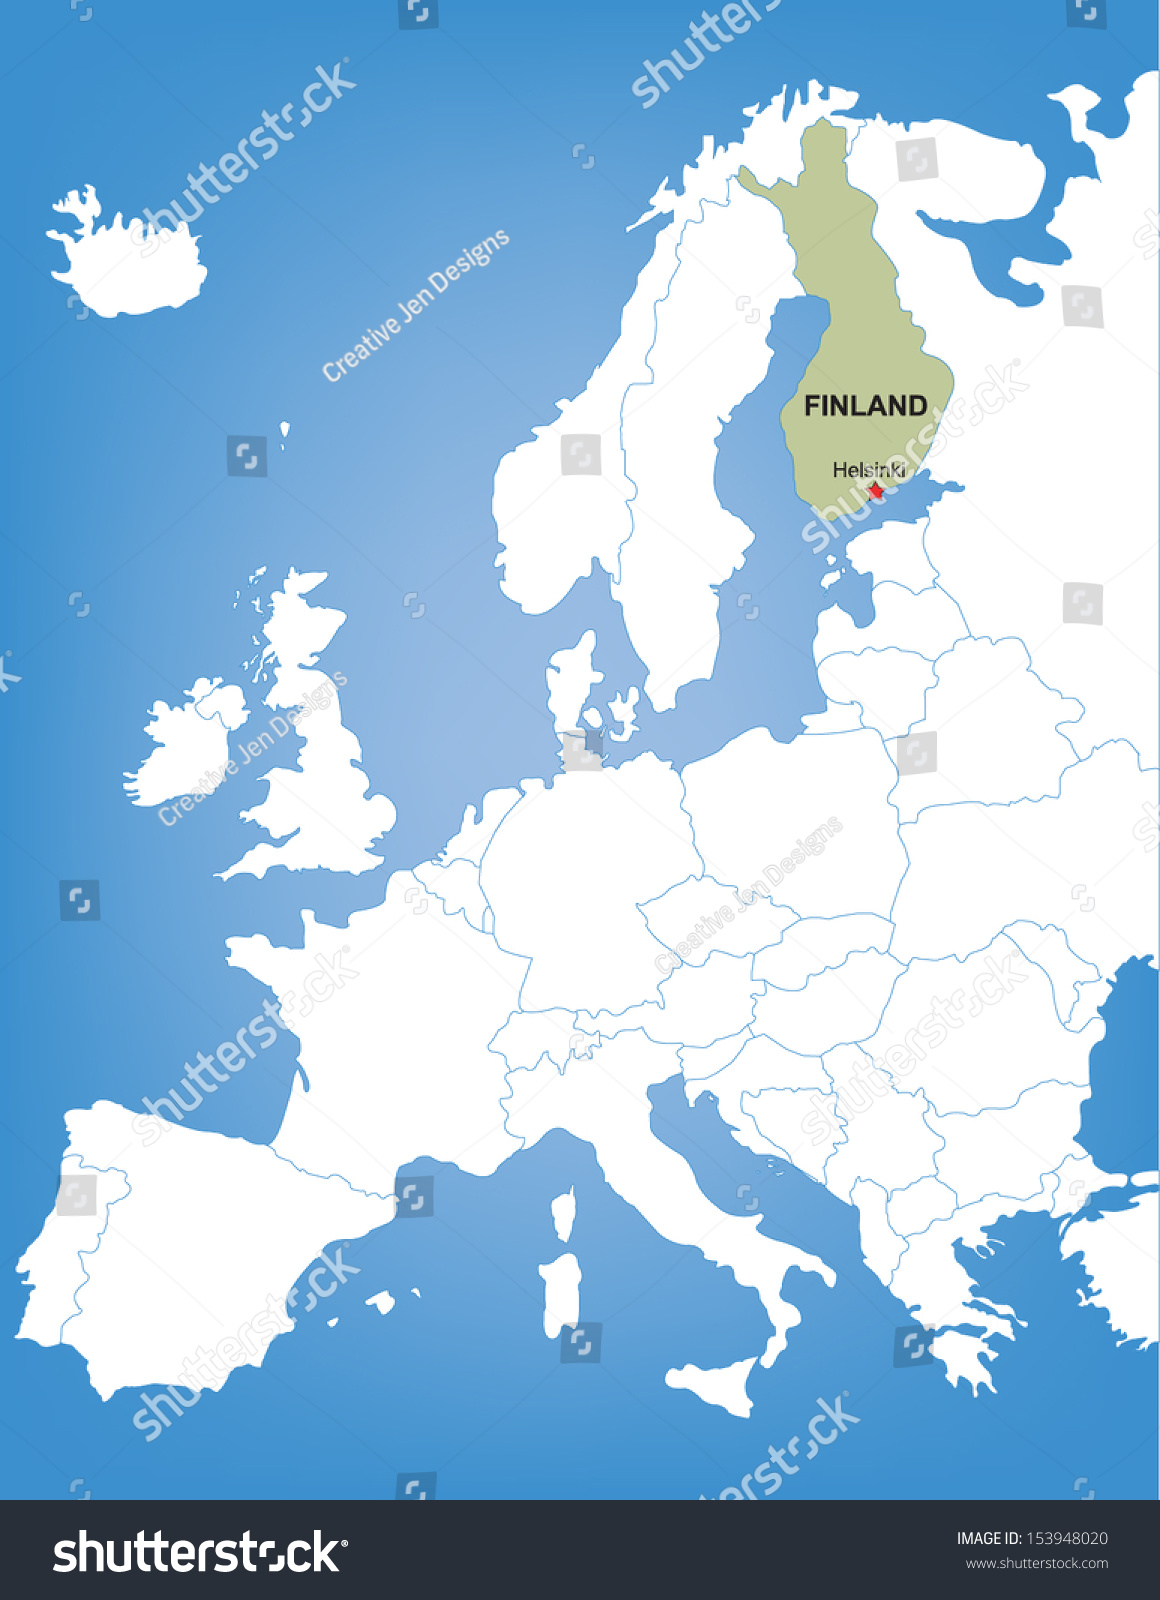 Vector map europe highlighting country finland stock vector vector map of europe highlighting the country of finland gumiabroncs Gallery